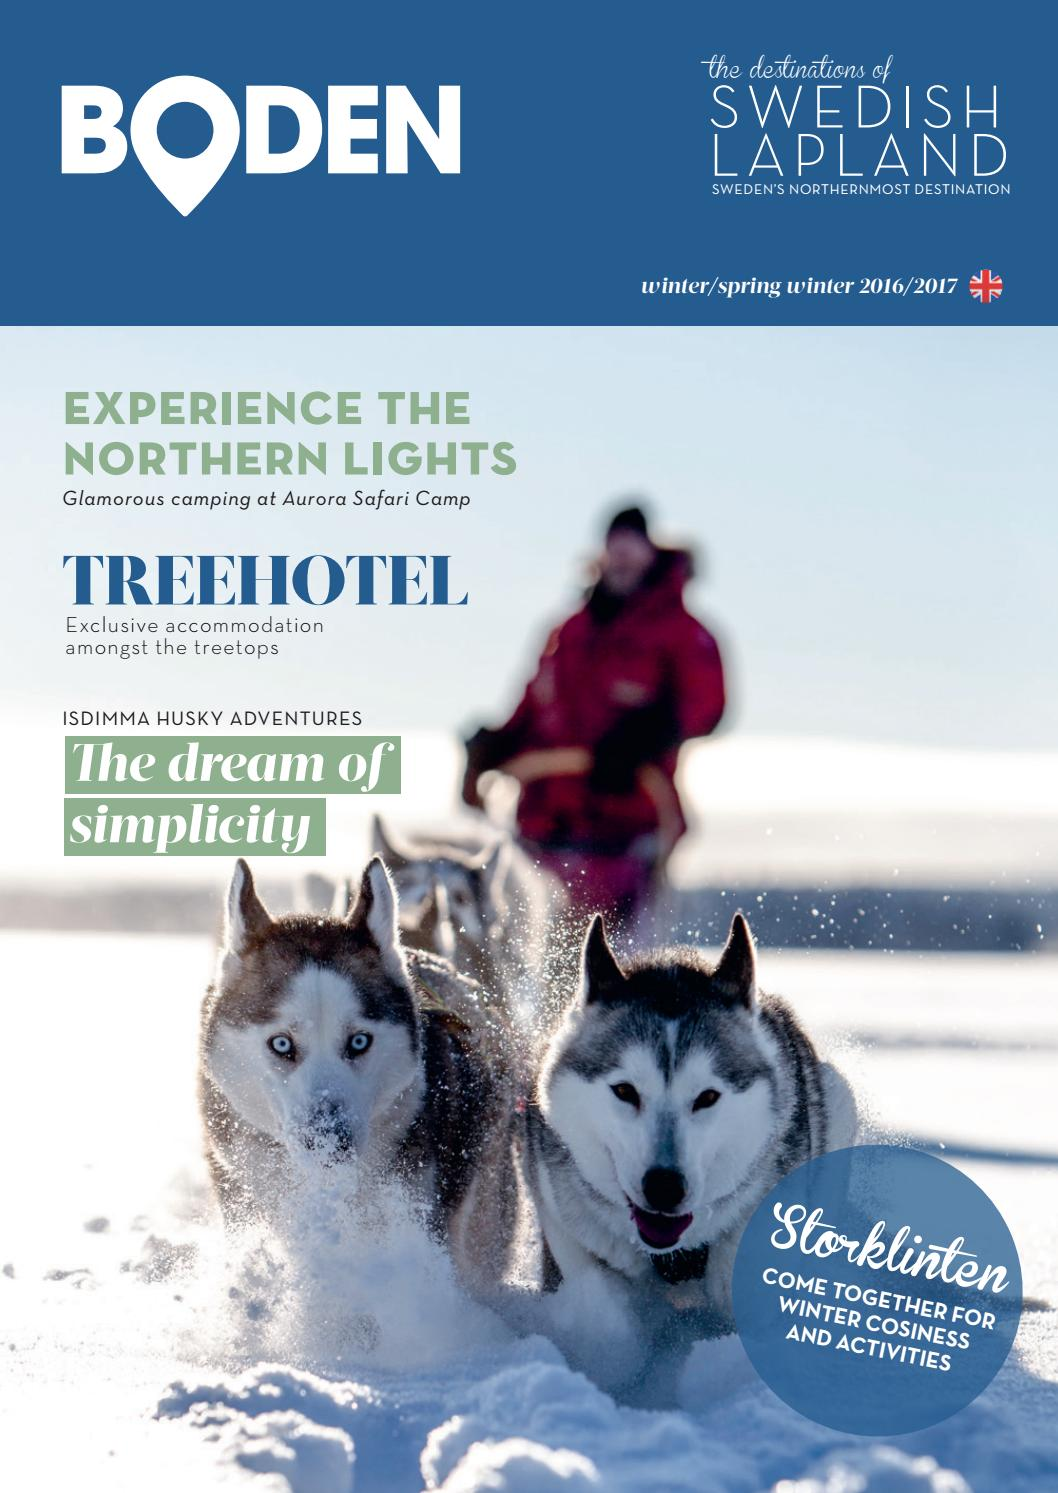 Destinations of swedish lapland boden winter spring winter for Boden winter 2016